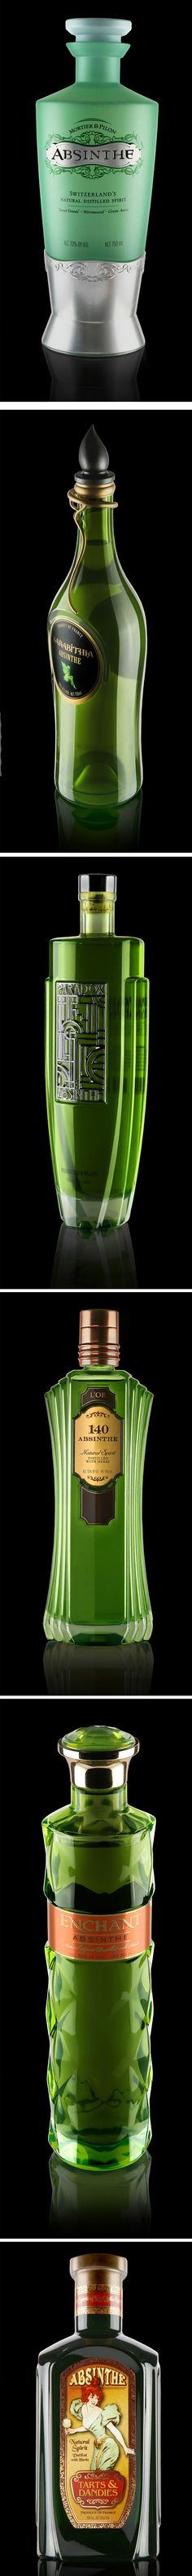 Absinthe this is something i have wanted to try for a long time